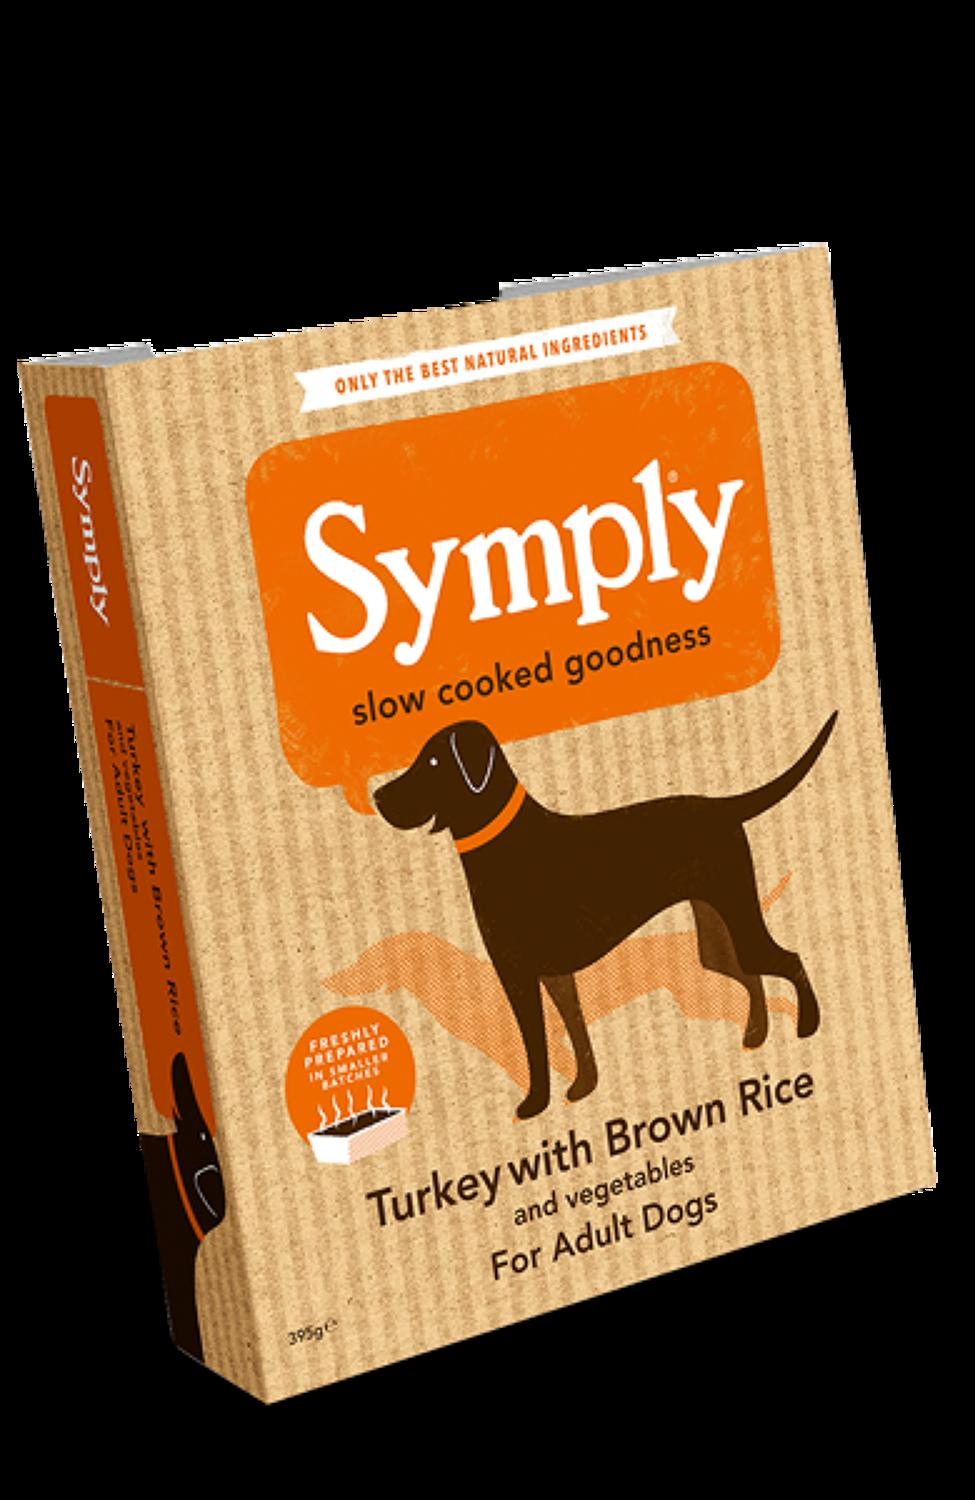 Symply Turkey & Rice For Adult Dogs 395g